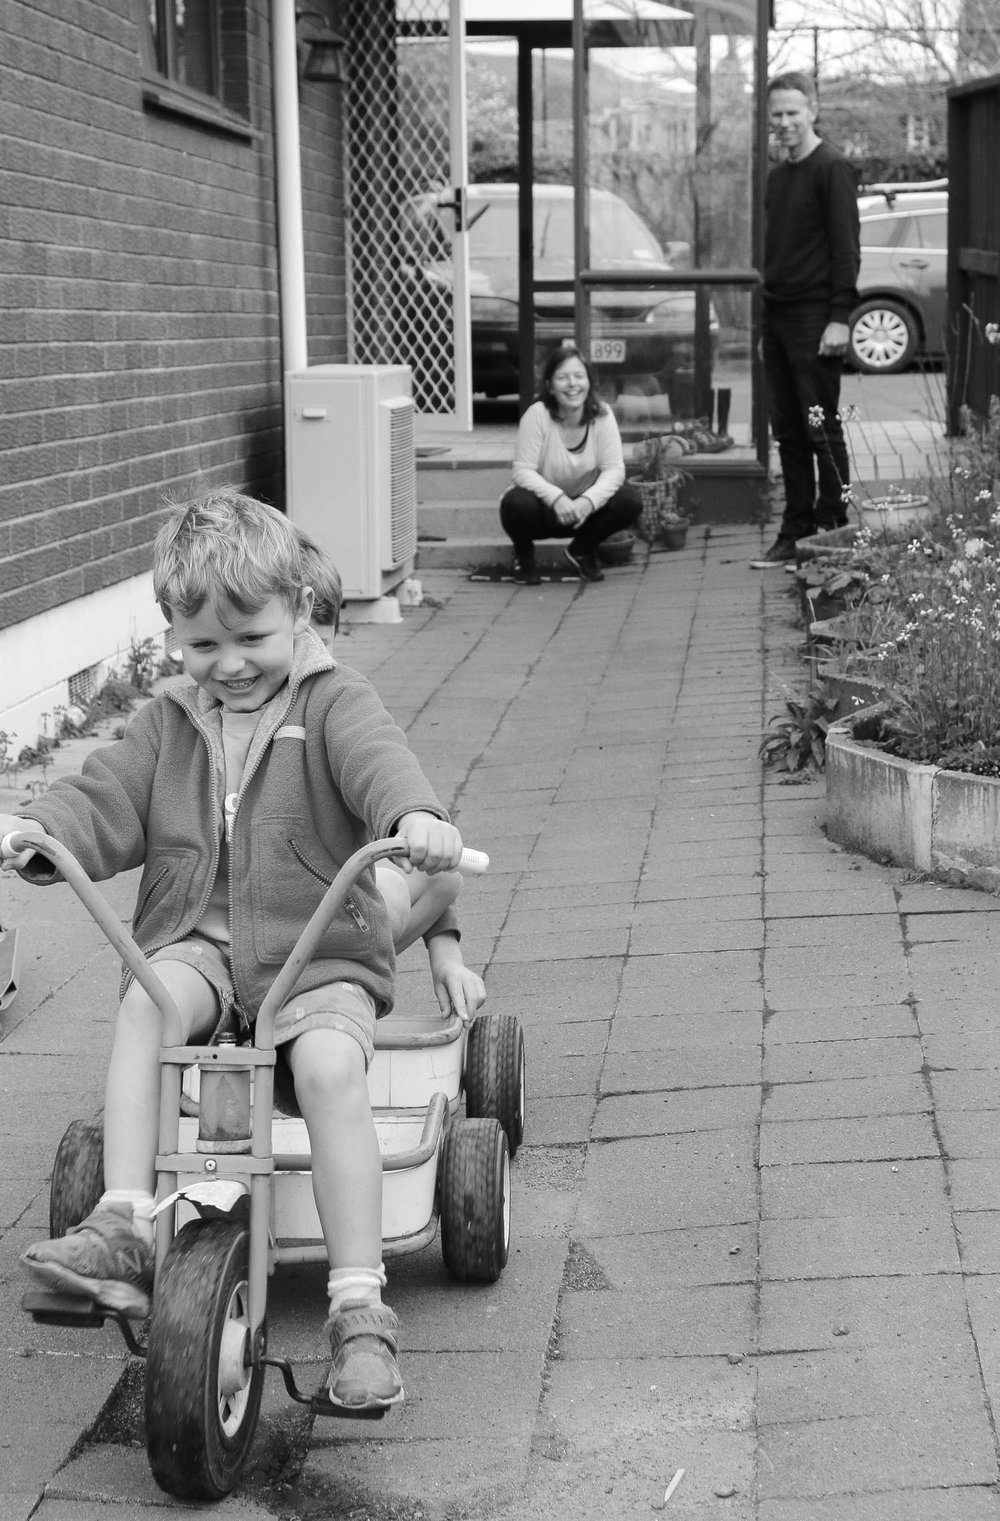 boy-playing-on-trike-mum-sitting-in-background-watching-and-smiling-black-and-white.jpg